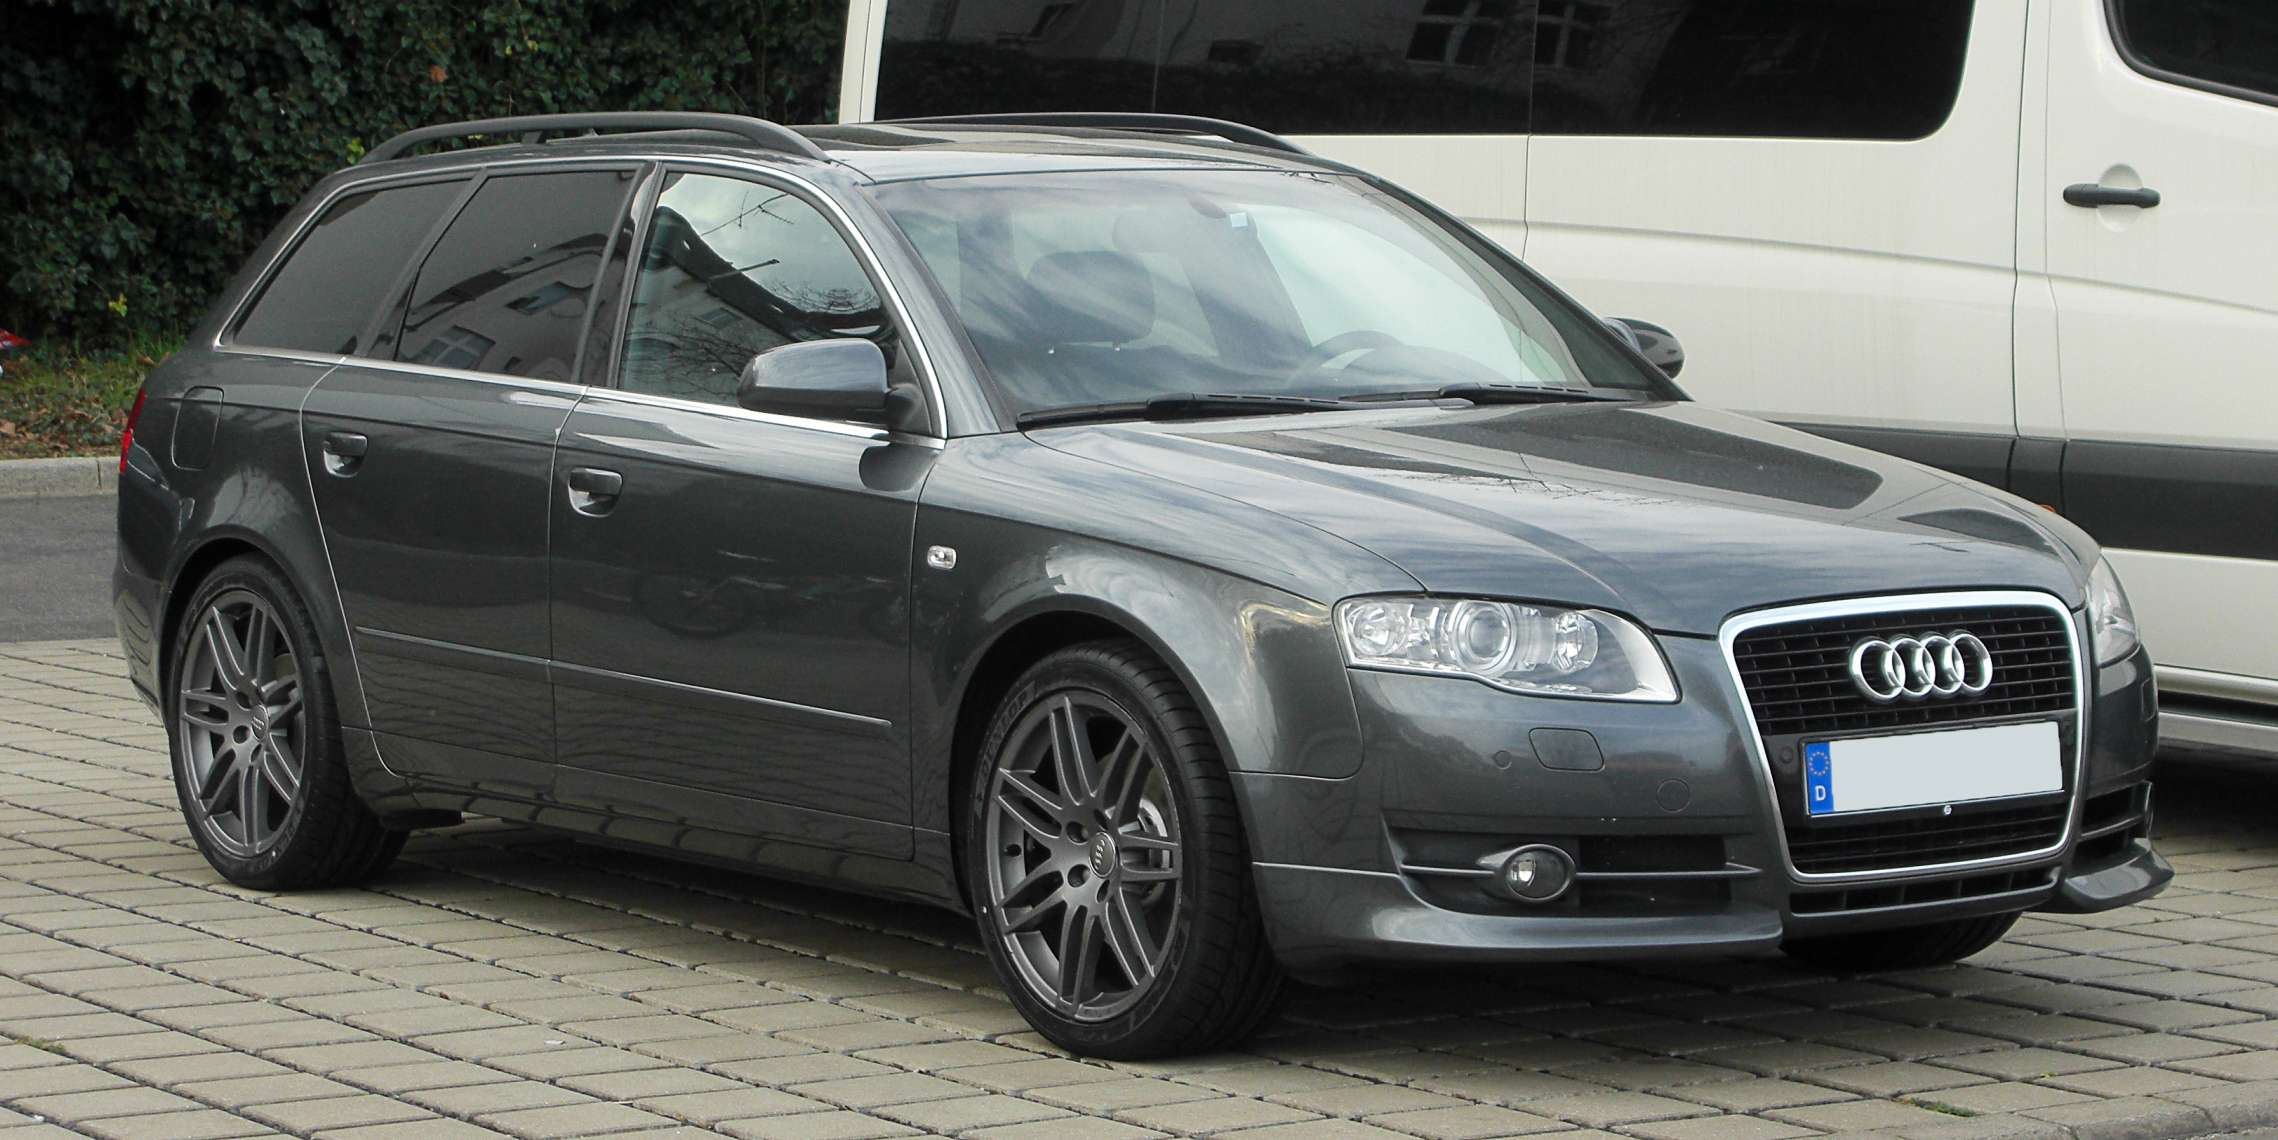 file audi a4 avant b7 frontansicht 12 m rz 2011 d wikimedia commons. Black Bedroom Furniture Sets. Home Design Ideas